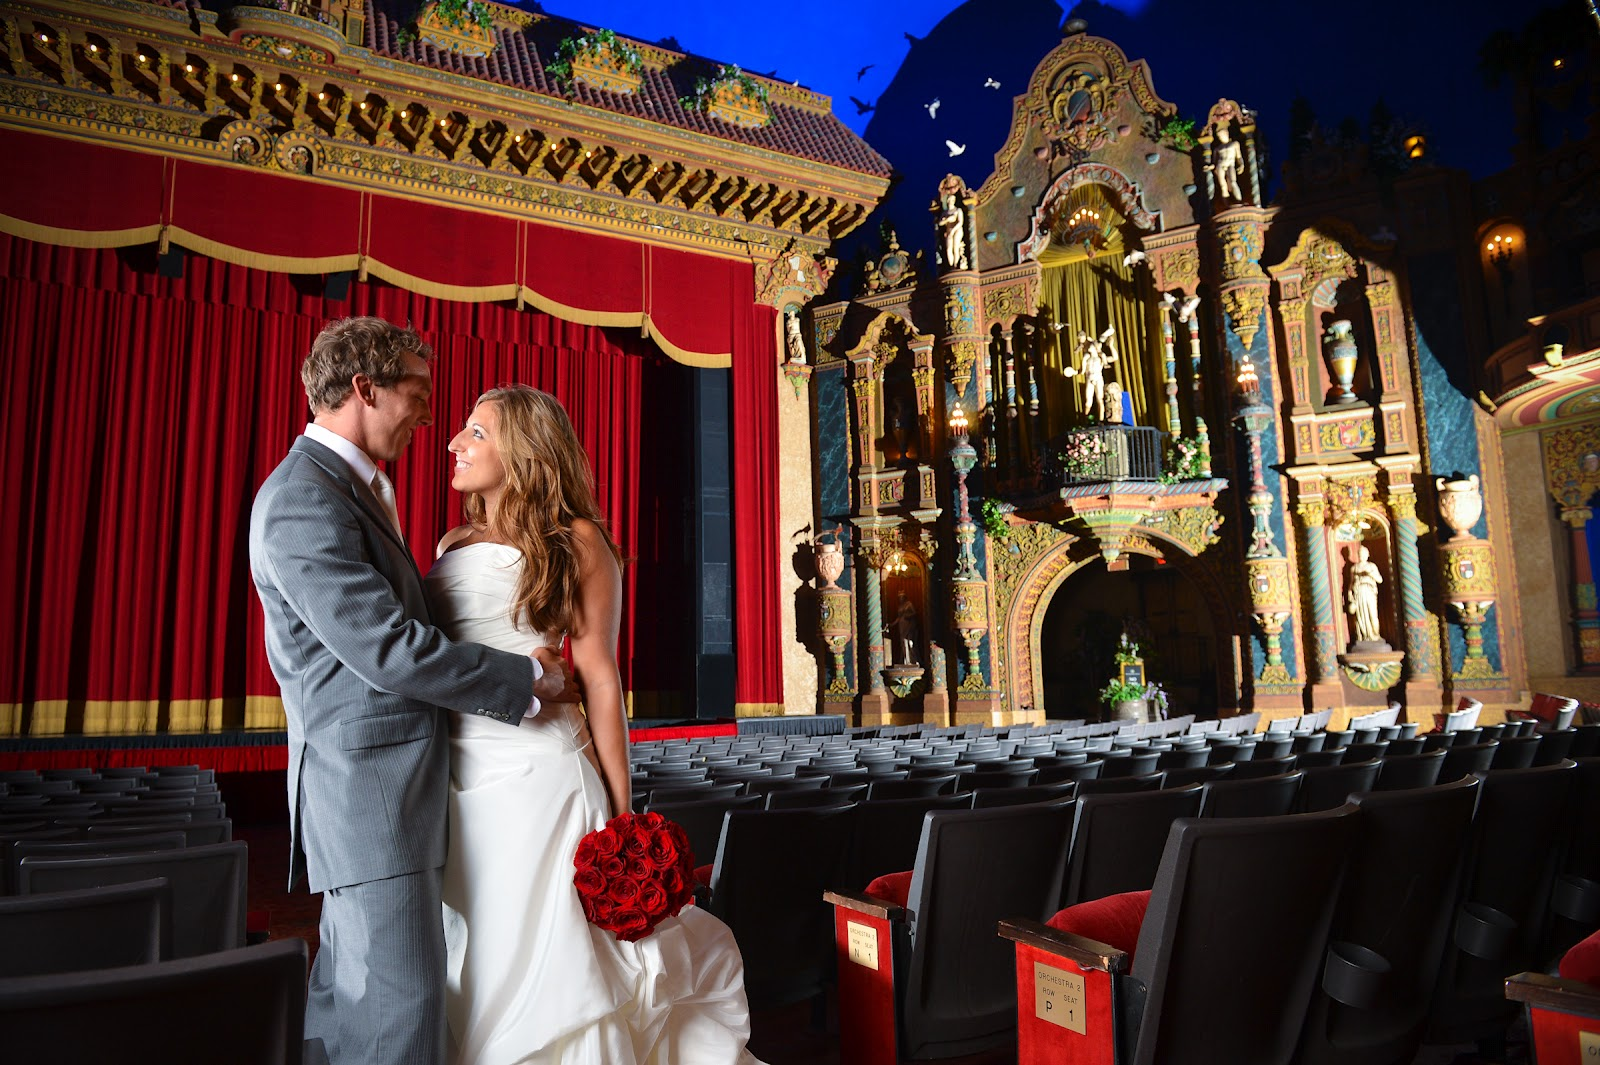 louisville-palace-blog-louisville-palace-louisville-wedding-photographer-wedding-photographers-louisville-palace-theater-louisville-palace-theatre-wedding-louisville-kentucky-theater-17